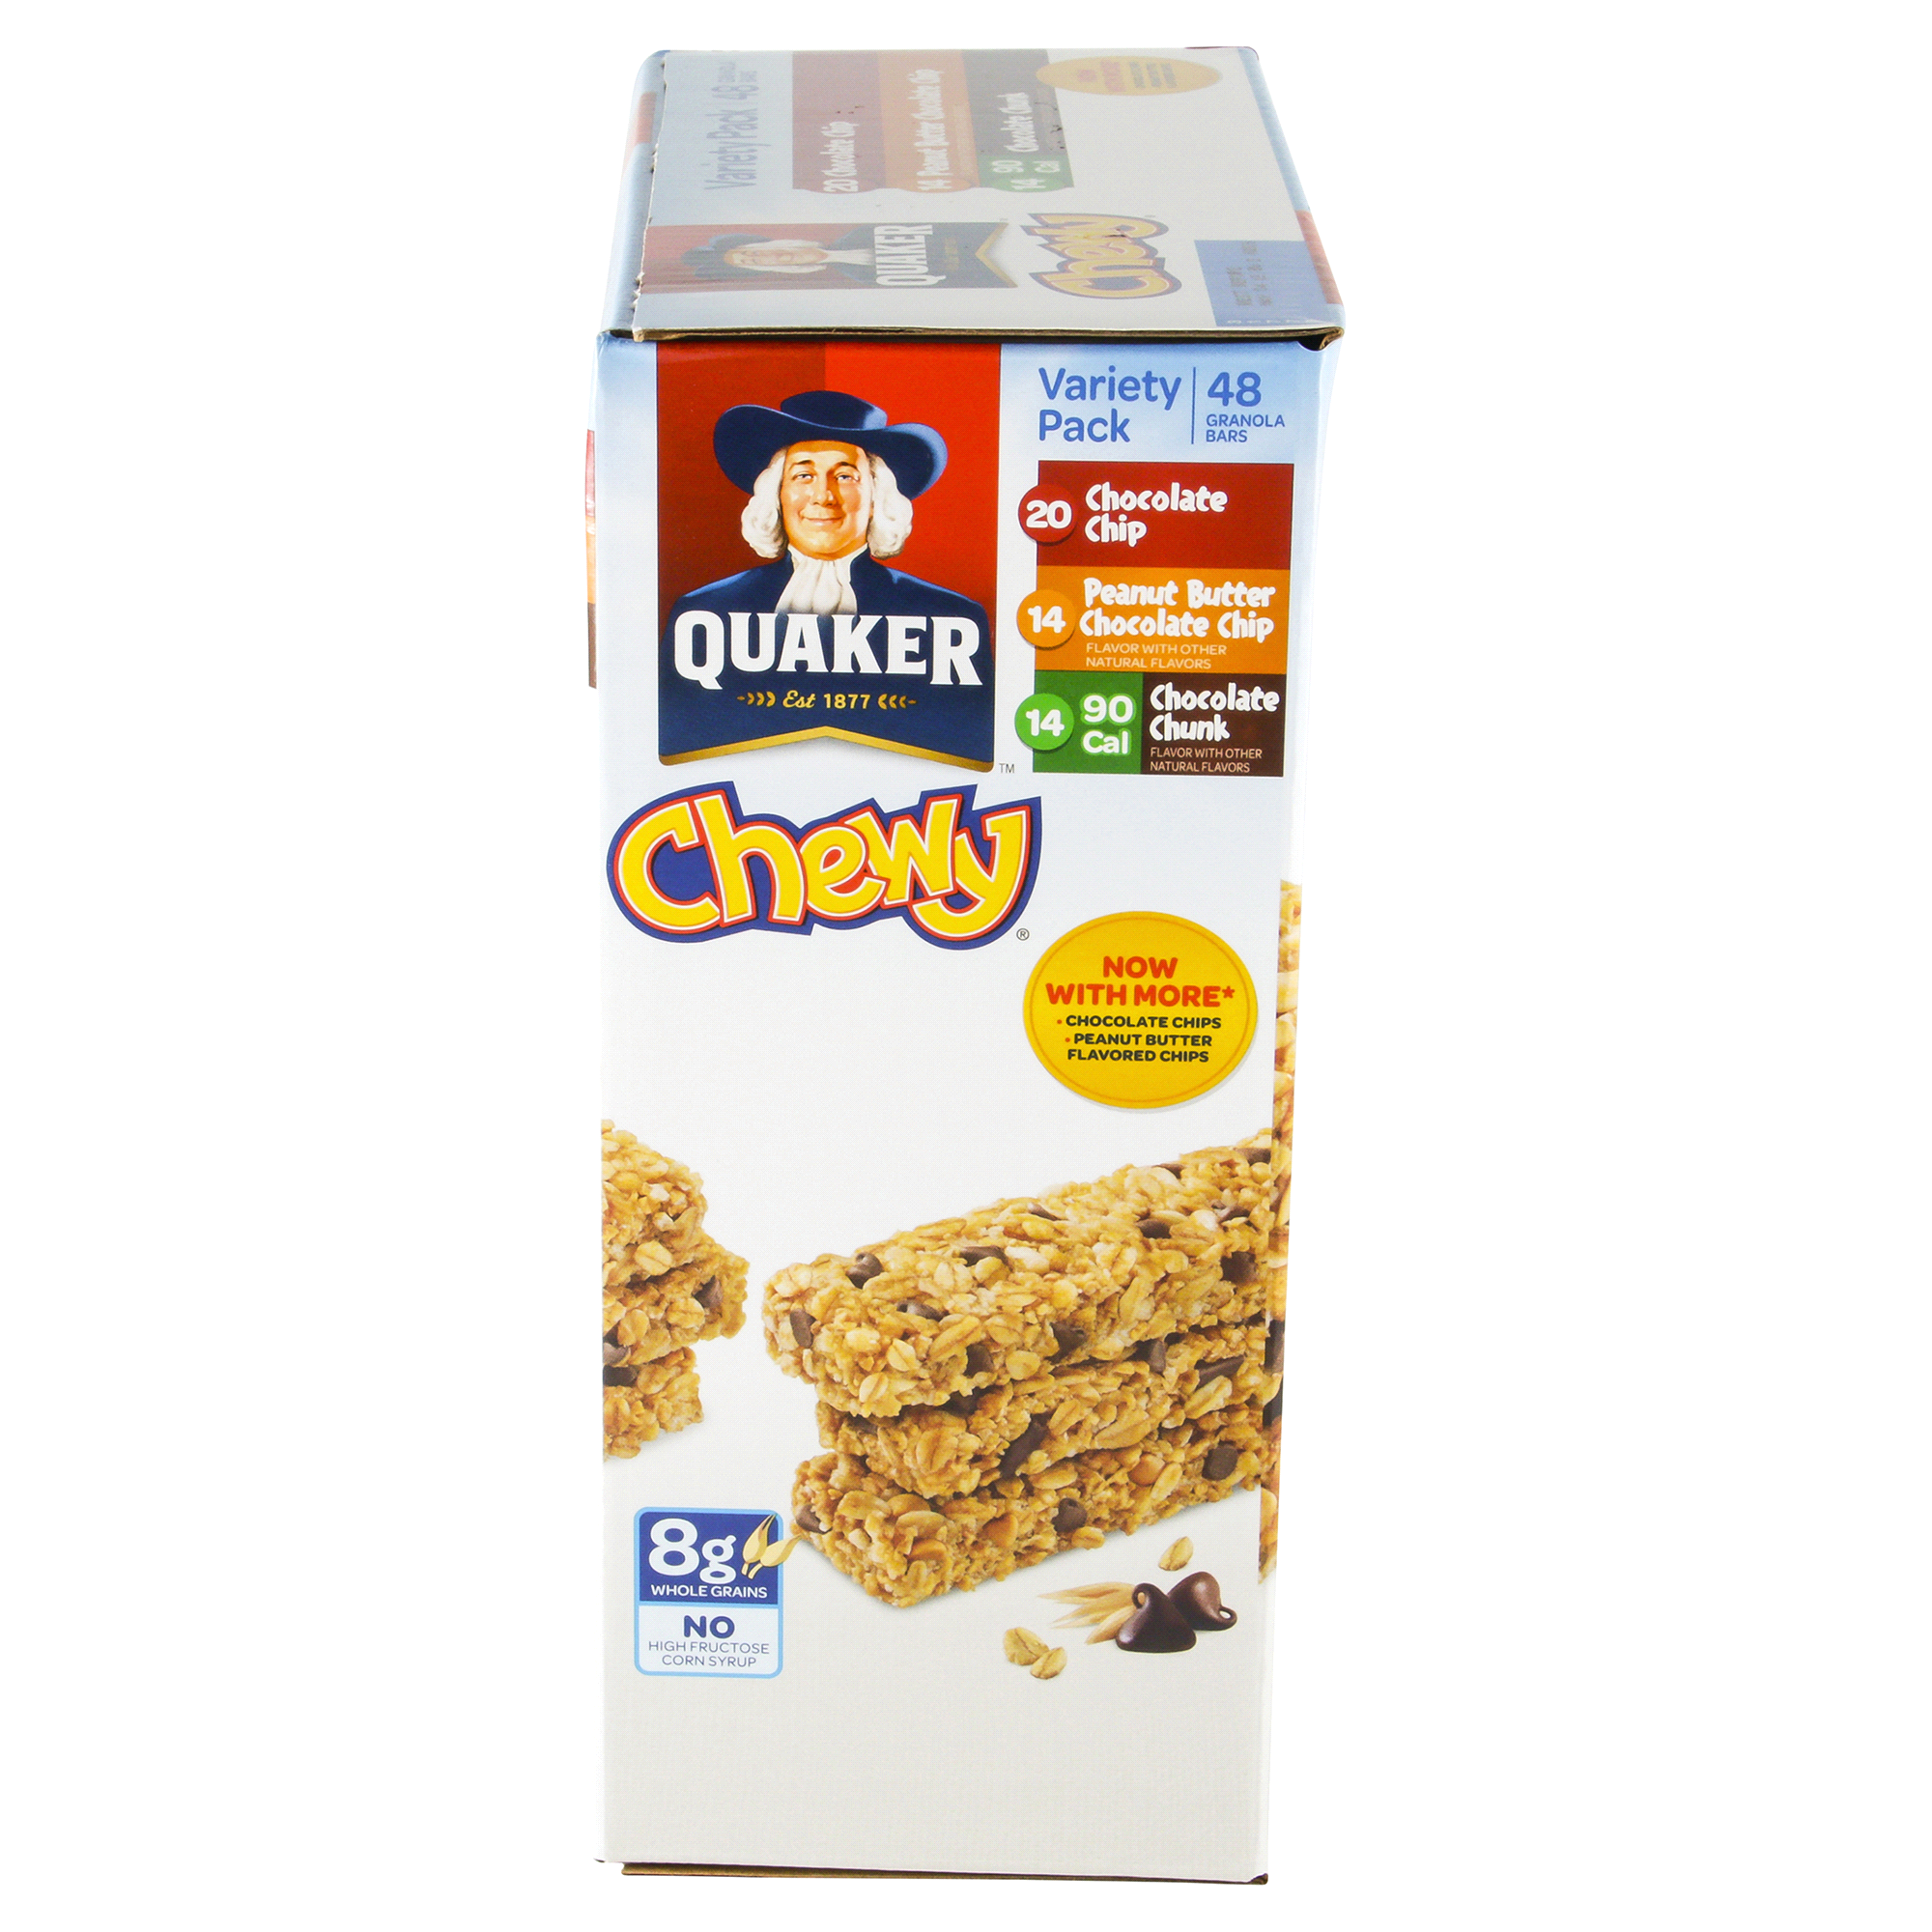 quaker chewy granola bars variety pack 48 count | meijer